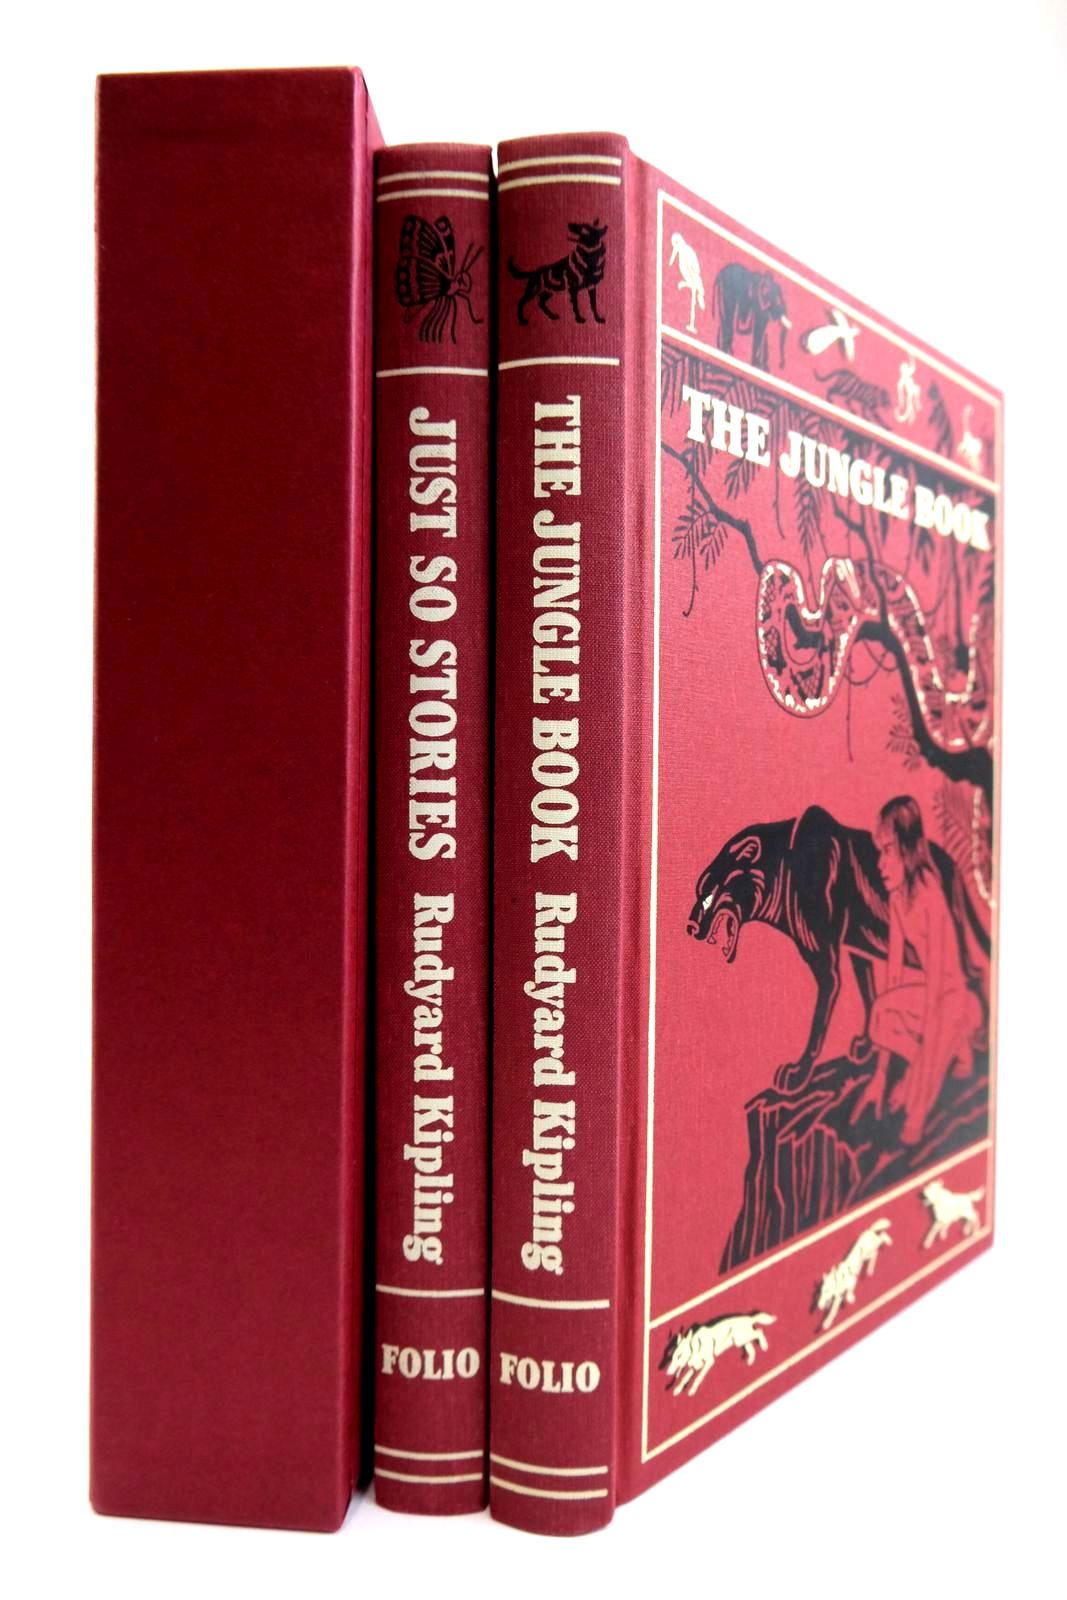 Photo of THE JUNGLE BOOK AND JUST SO STORIES written by Kipling, Rudyard illustrated by Detmold, Maurice Detmold, Edward J. Kipling, Rudyard published by Folio Society (STOCK CODE: 2133994)  for sale by Stella & Rose's Books